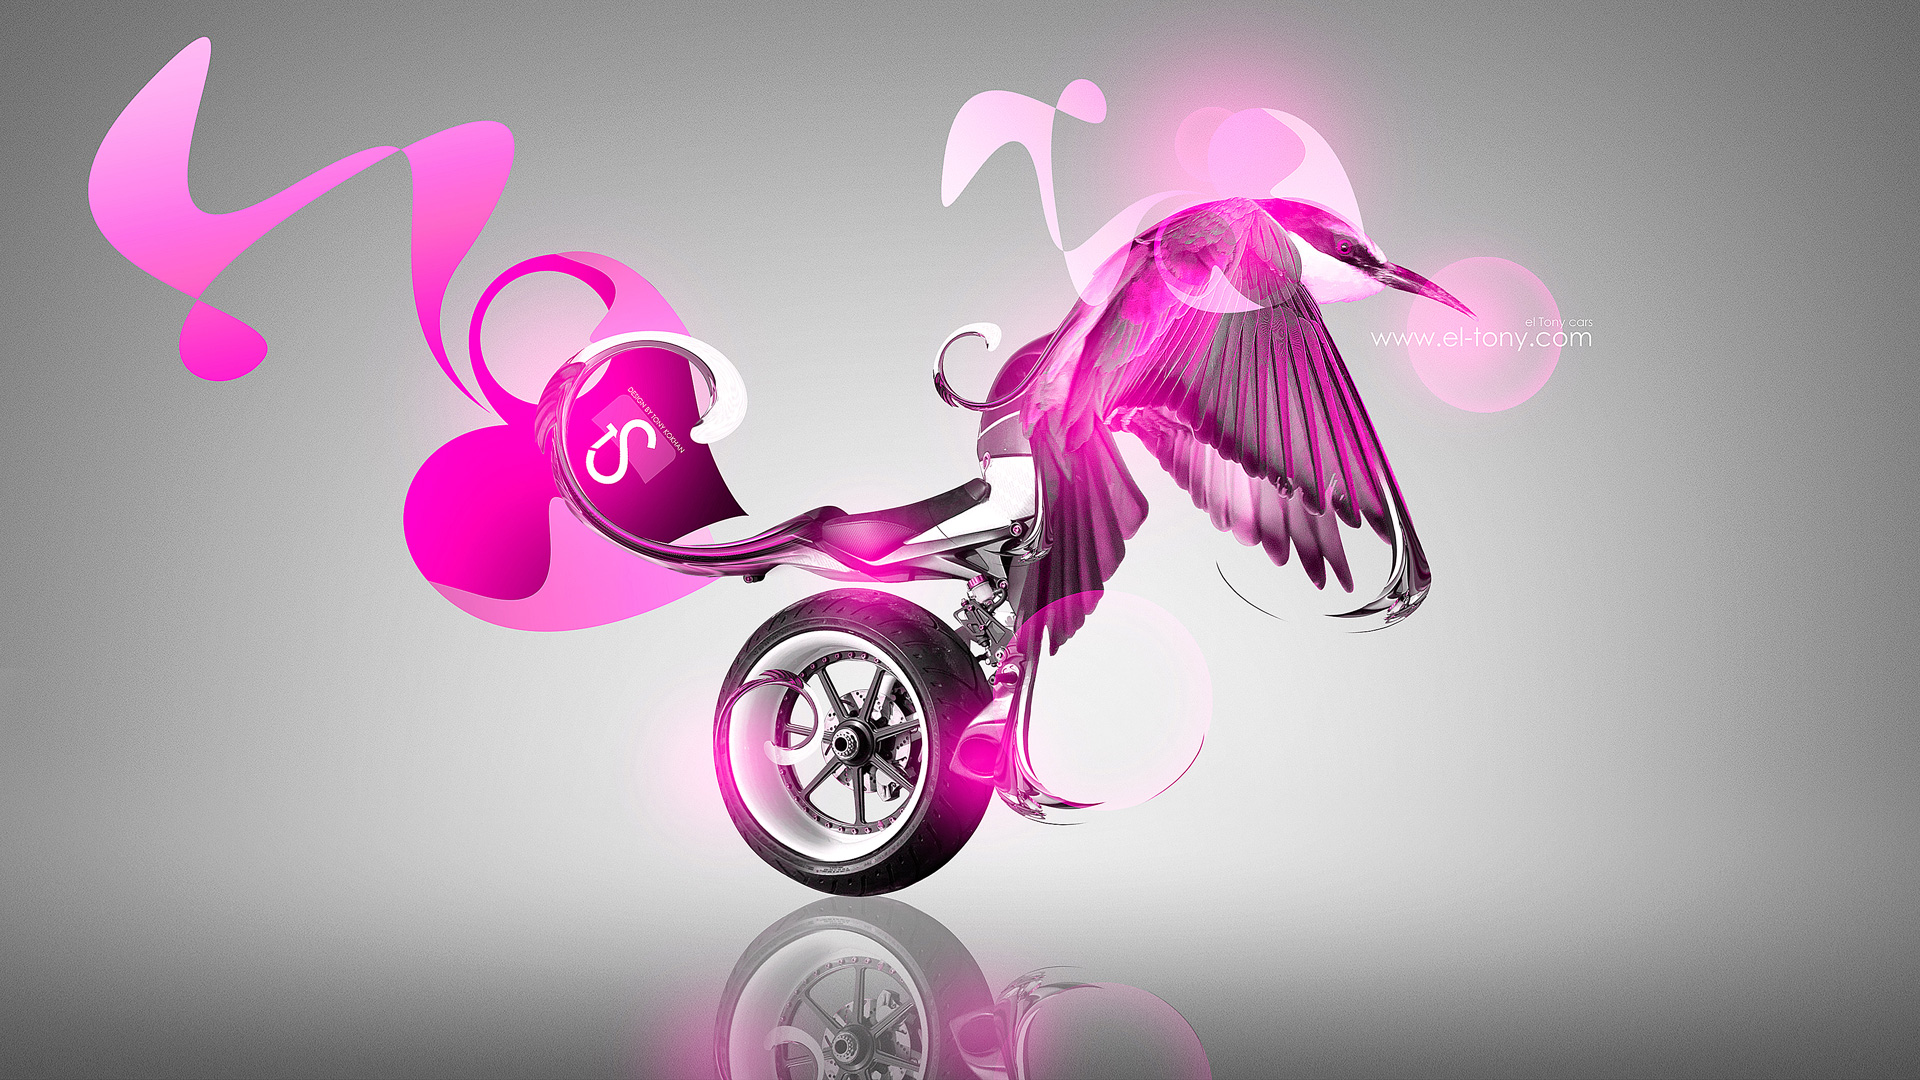 Amazing Moto Colibri Bike 2014 HD Wallpapers Design By  Great Pictures